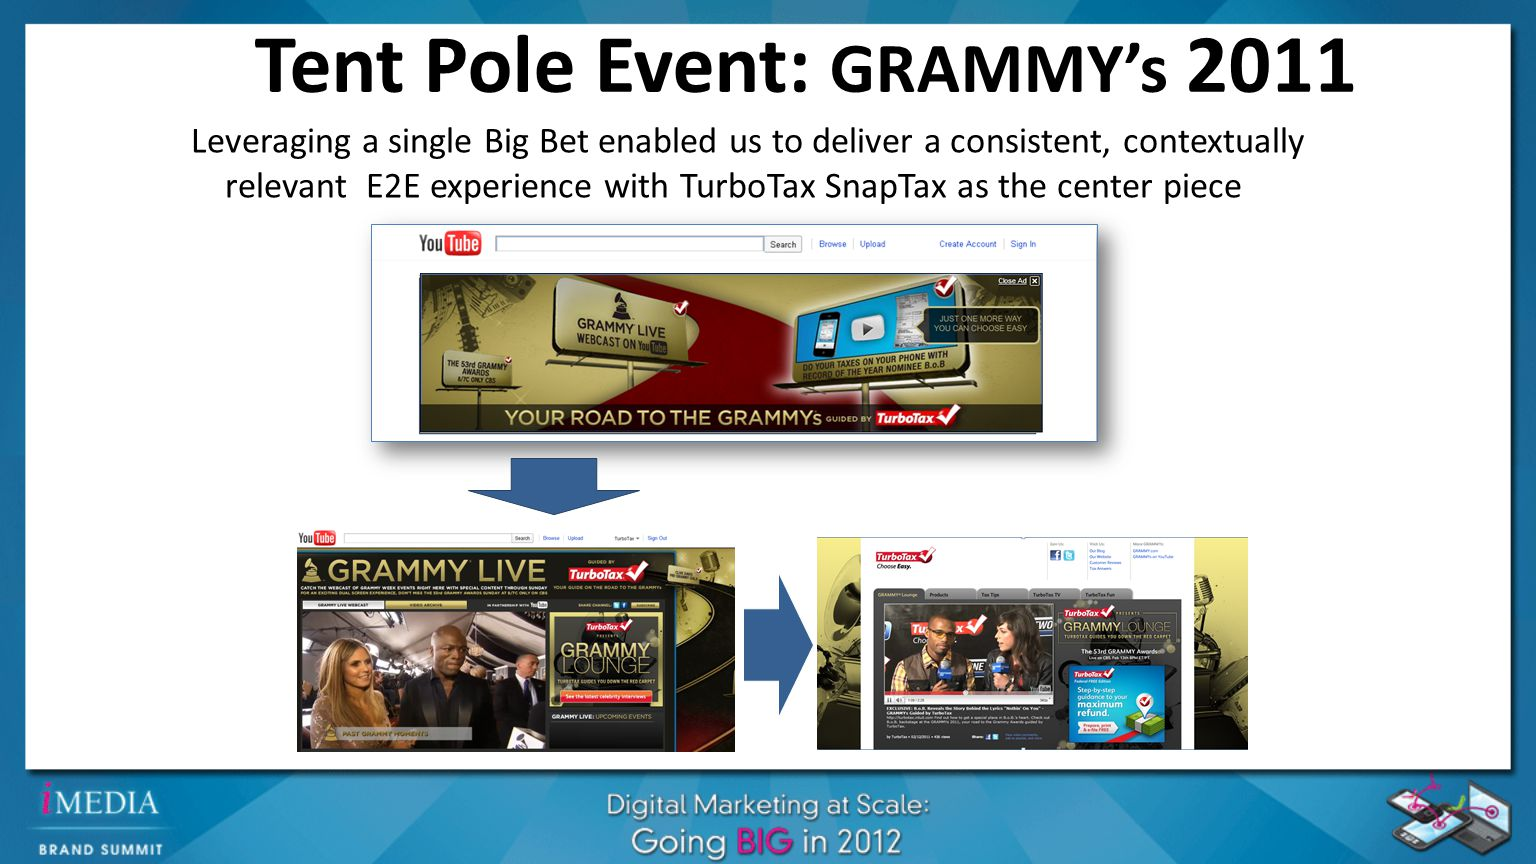 Tent Pole Event: GRAMMY's 2011 Leveraging a single Big Bet enabled us to deliver a consistent, contextually relevant E2E experience with TurboTax SnapTax as the center piece